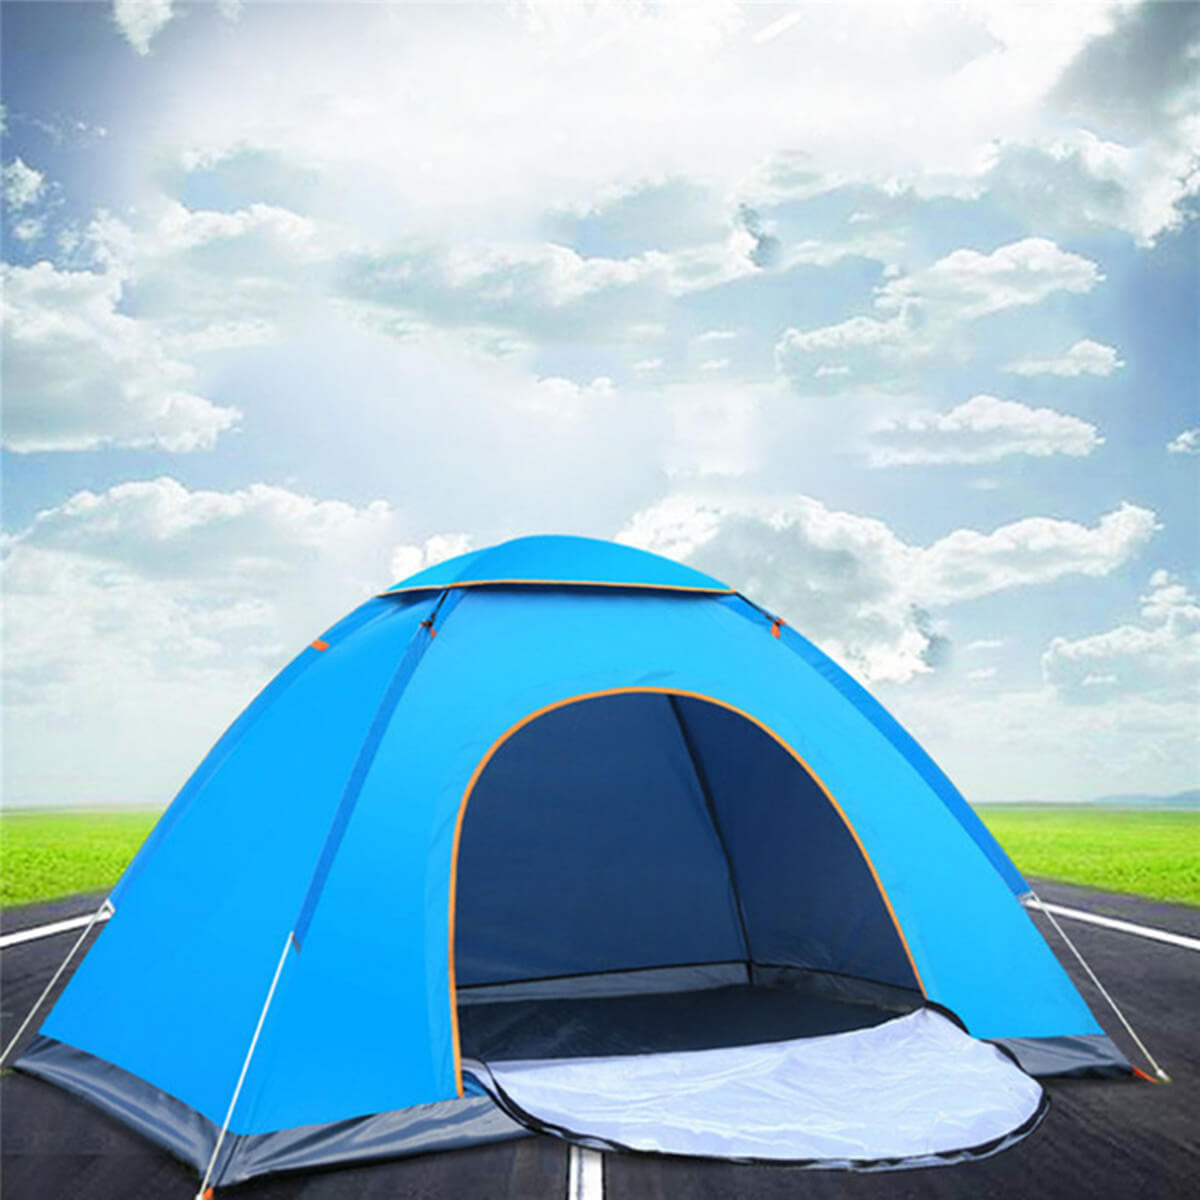 Outdoorz™ Automatic Camping Tent for Outdoor, Travel, and Hiking